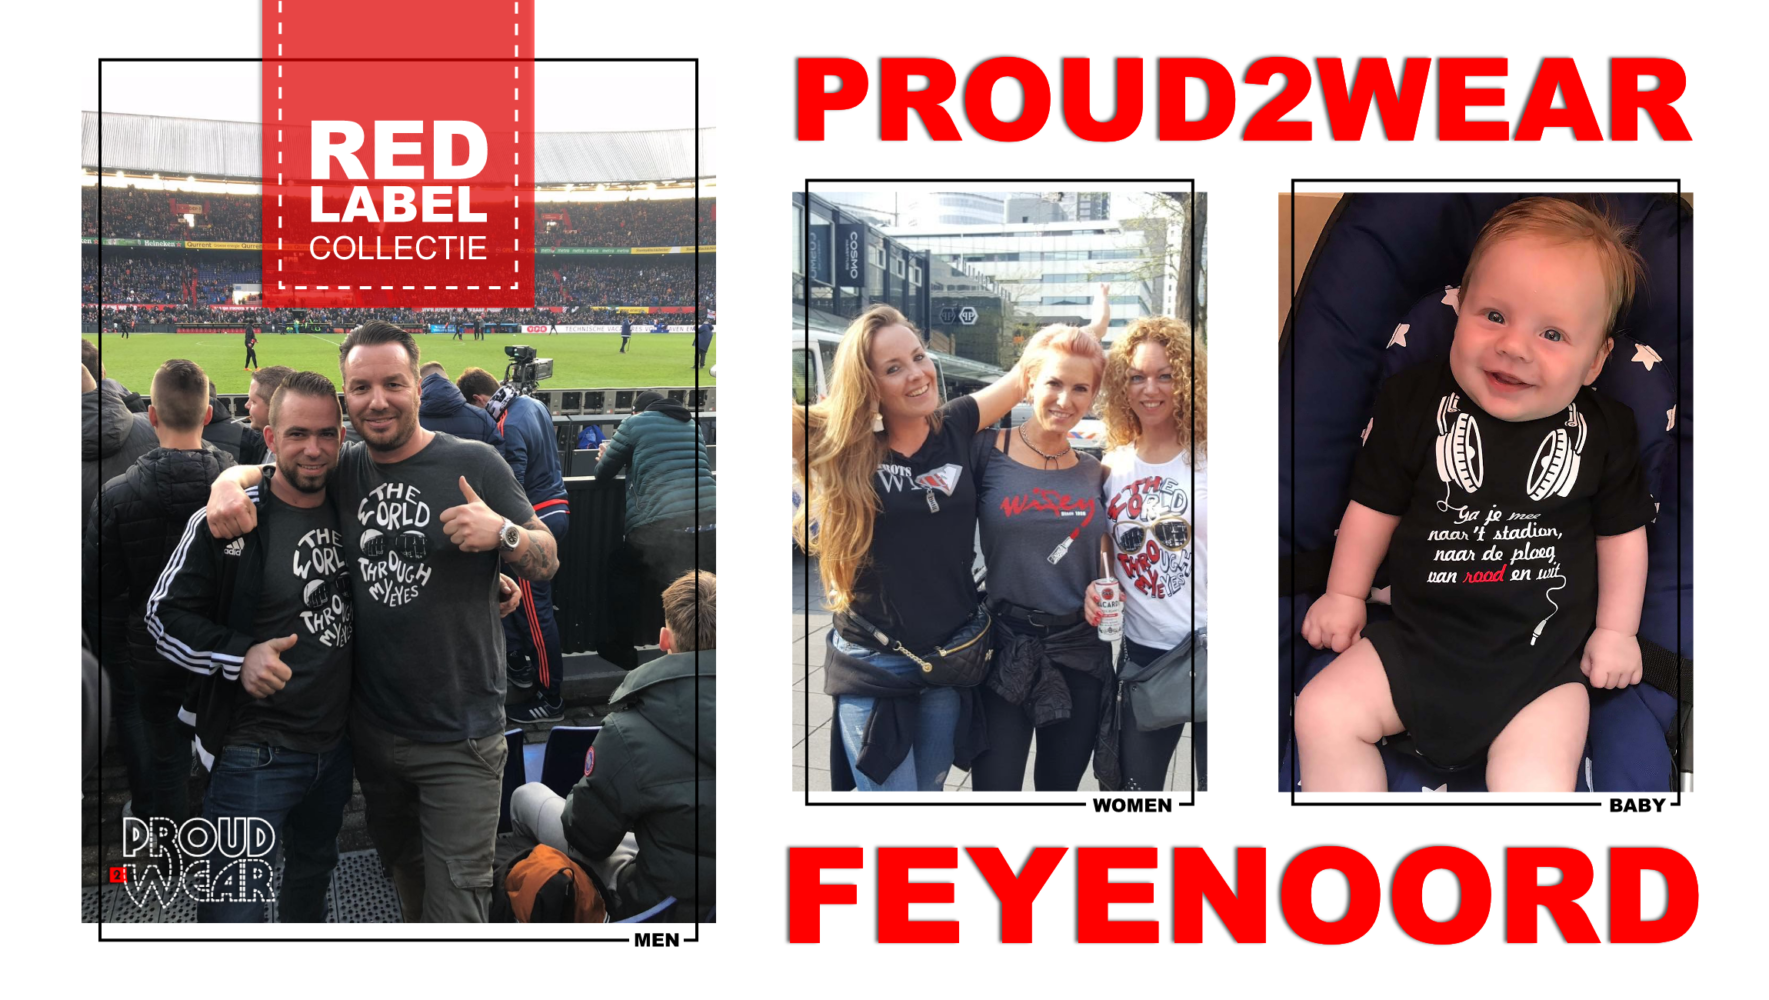 Proud2wear Feyenoord